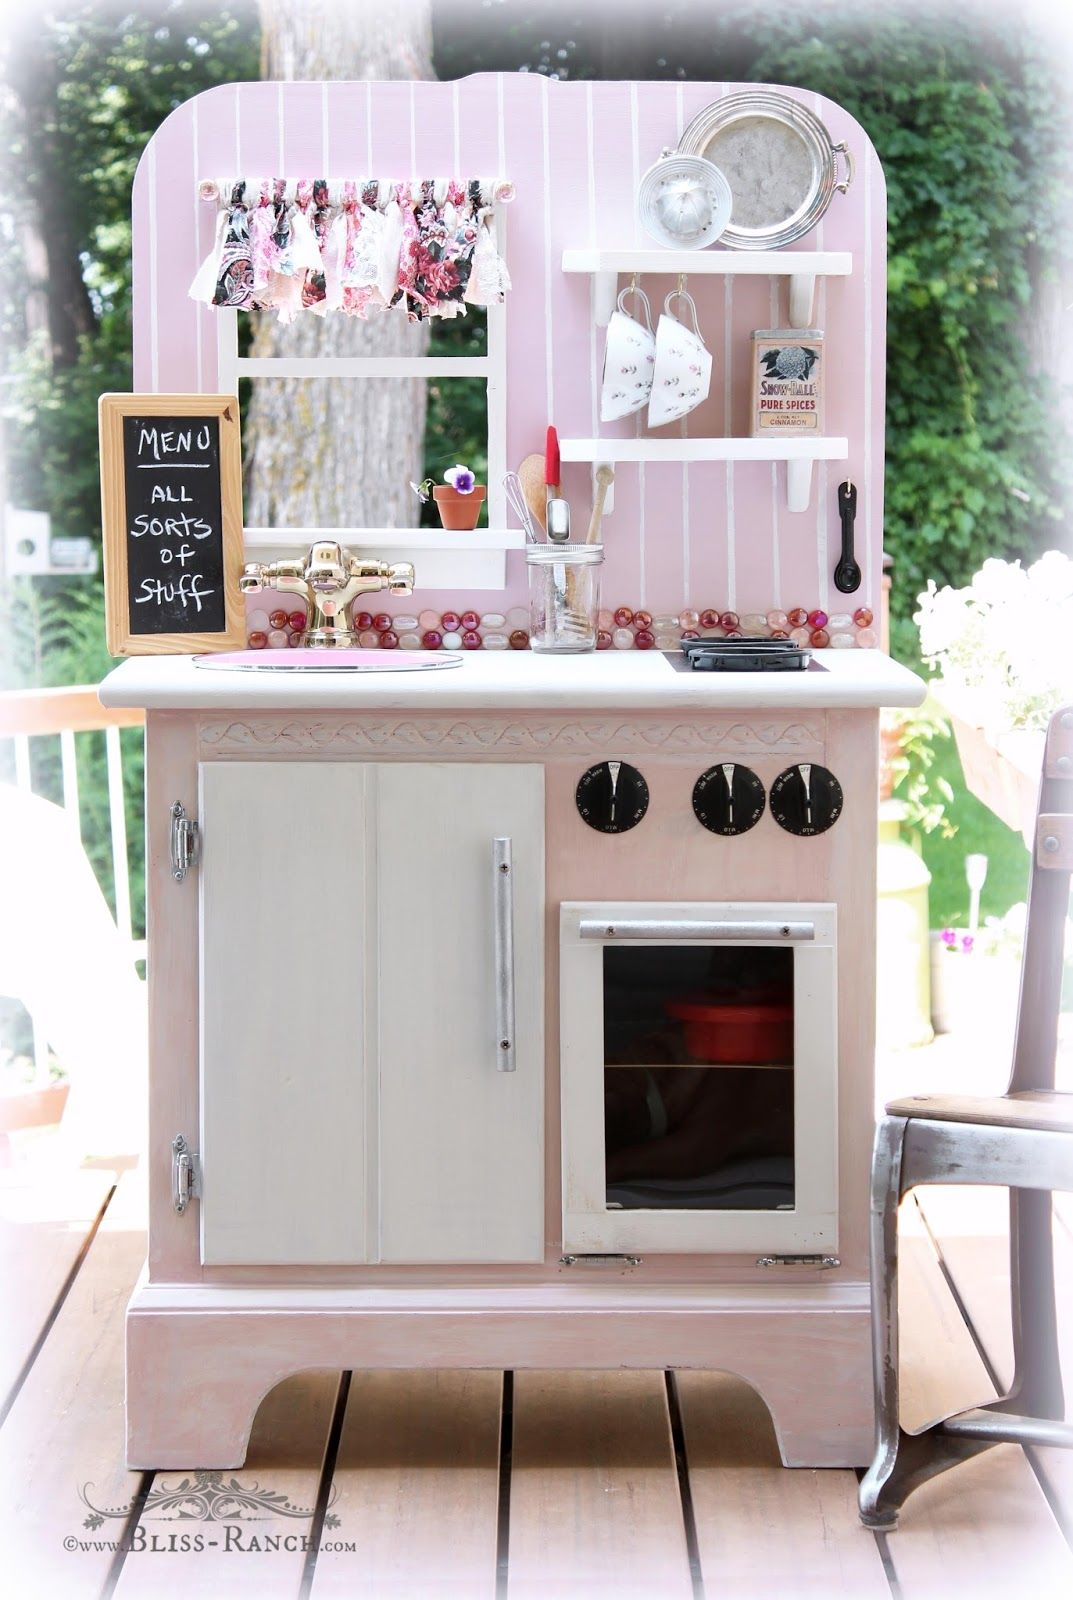 Maison Blanche Debutante Pink Play Kitchen | Nightstands, Bliss and on diy remodeled kitchen, diy vintage kitchen, diy concrete kitchen, diy rustic kitchen, diy halloween kitchen, diy steel kitchen, diy upcycled kitchen, diy industrial kitchen, diy storage kitchen, diy decorating kitchen, diy white kitchen, diy modern kitchen, diy outdoor kitchen, diy home kitchen, diy art kitchen, diy wood kitchen, diy toys kitchen, diy paint kitchen, diy beach kitchen, diy christmas kitchen,